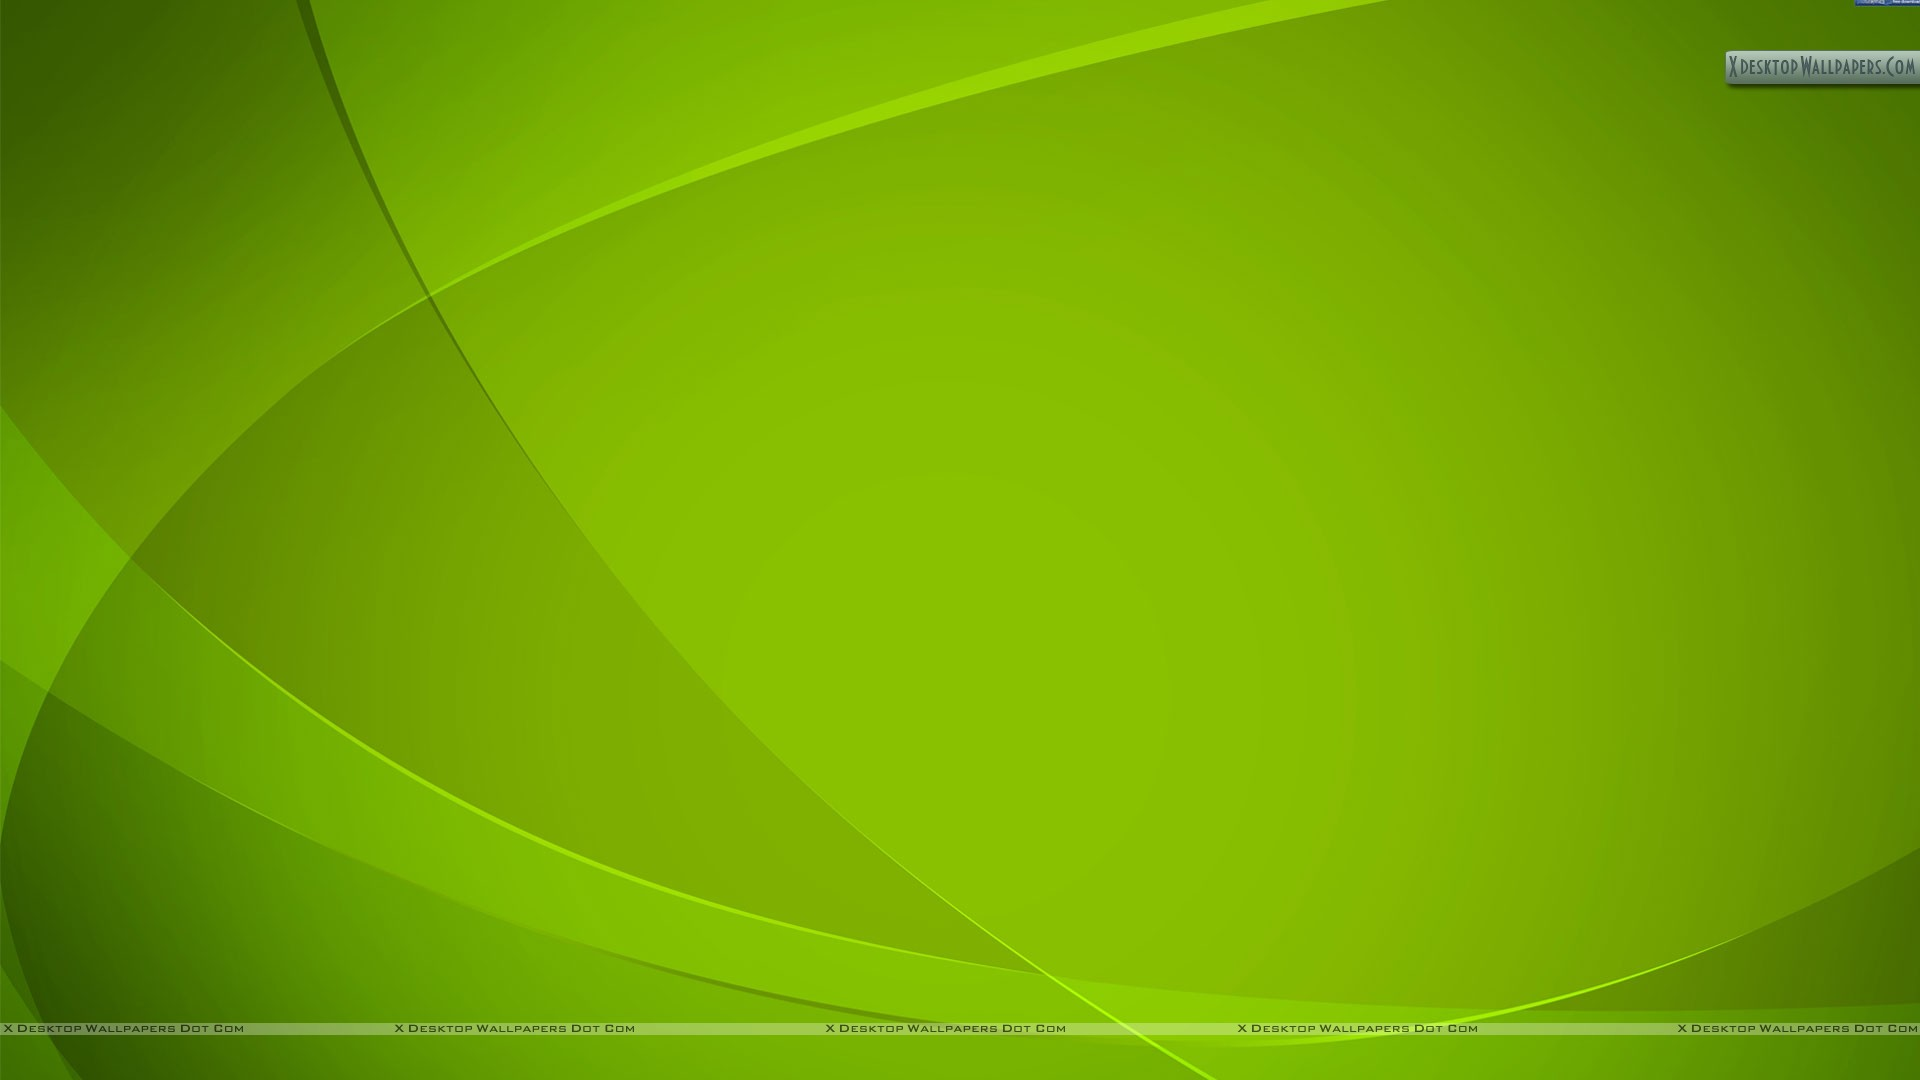 Green Background Wallpapers Photos Images in HD